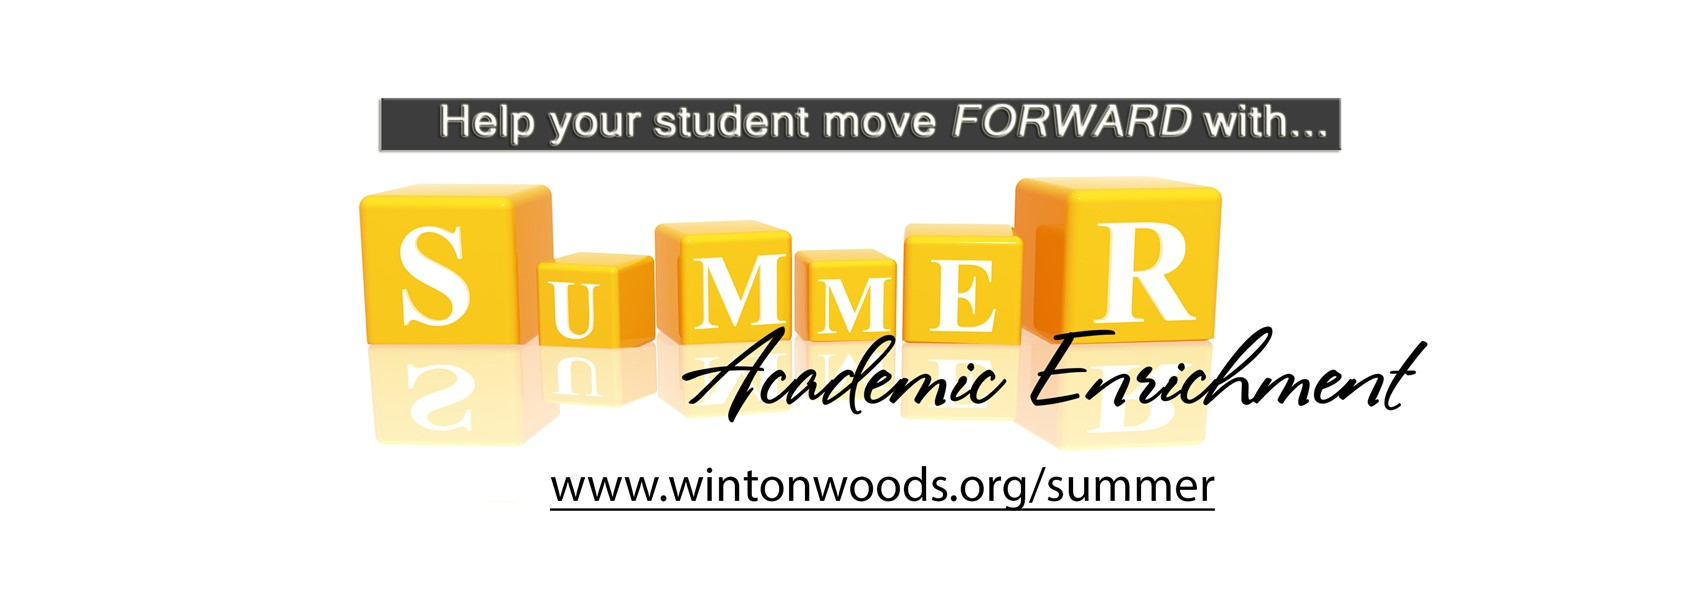 For information on summer academic enrichment opportunities, go to www.wintonwoods.org/summer.